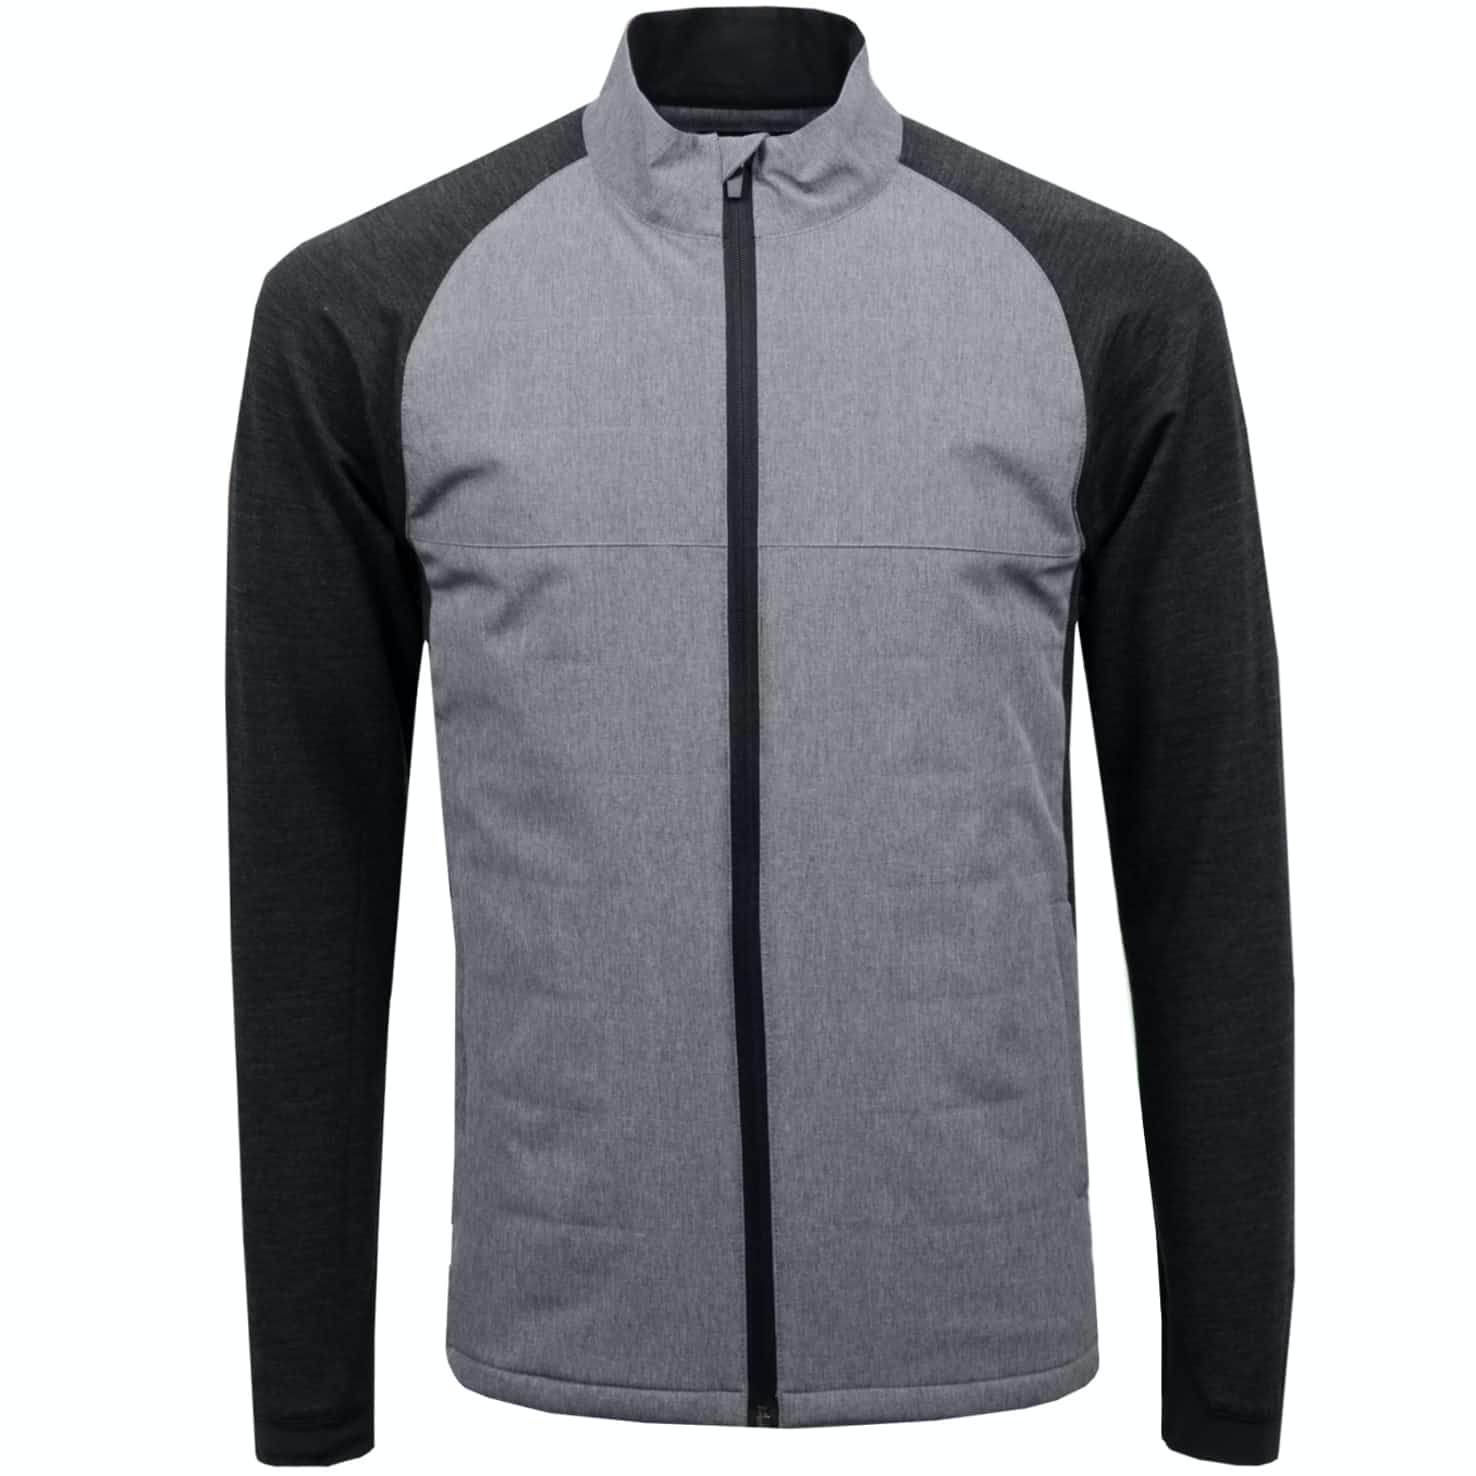 Tresta Insulator Jacket Grey Melange - 2018